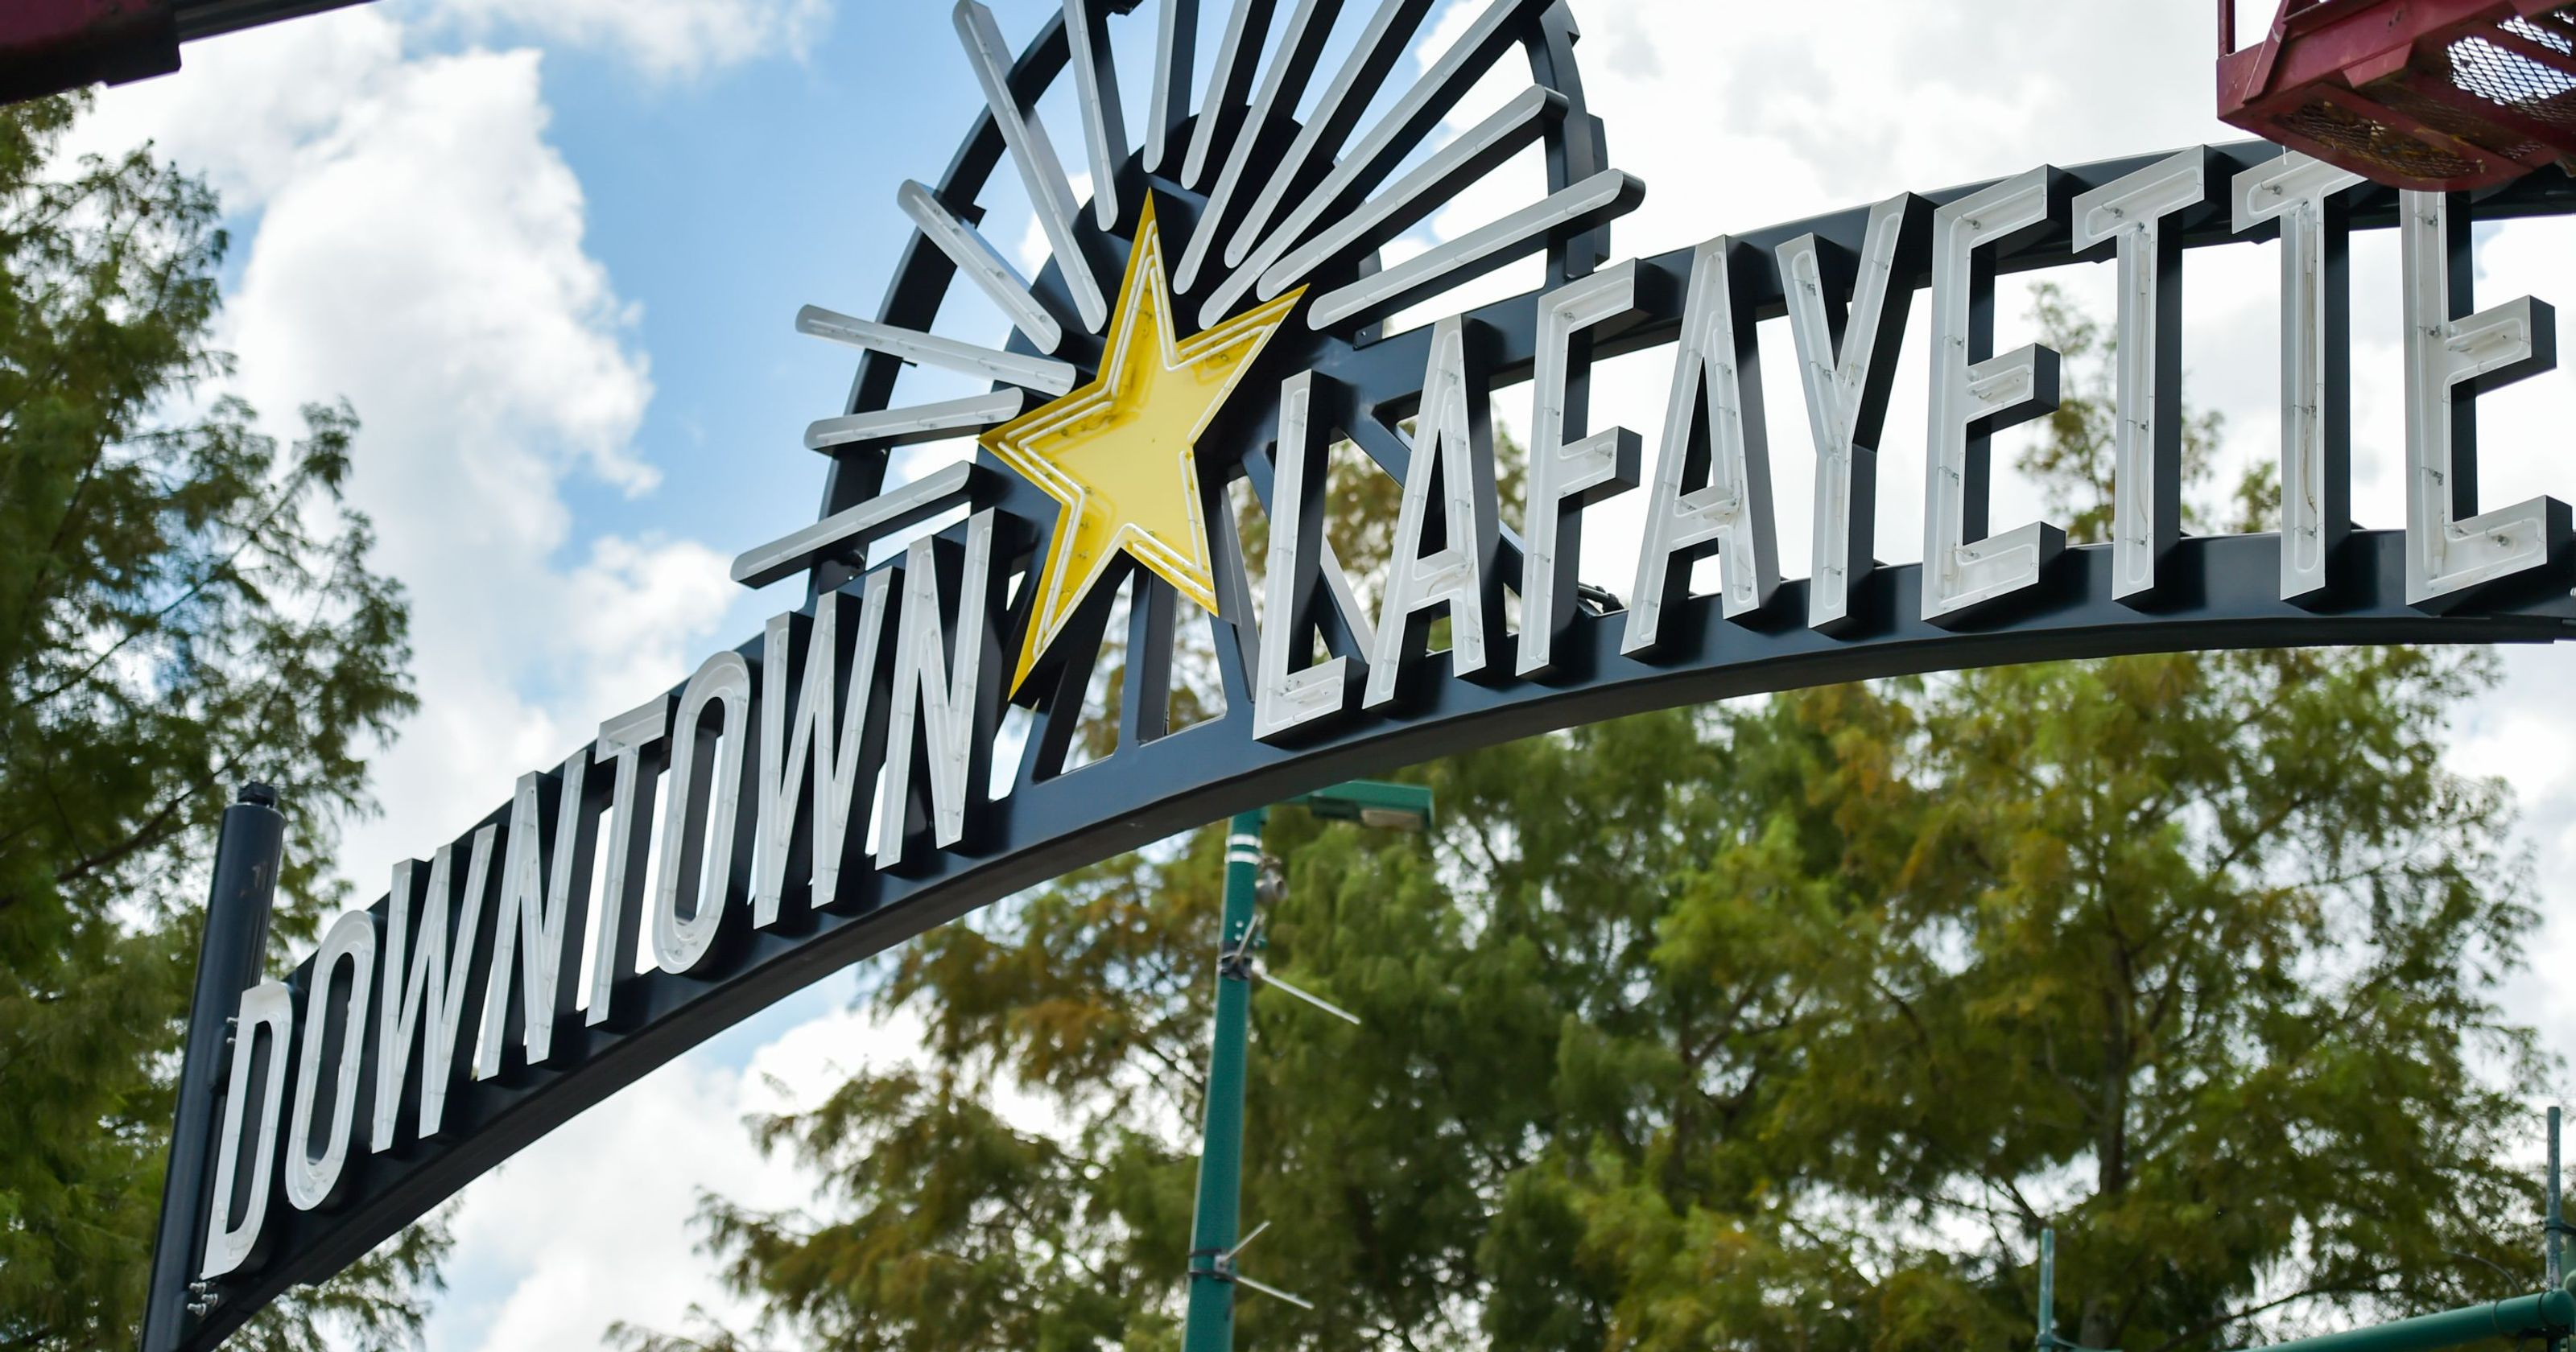 636076466437469278-tda.downtown.lafayette.sign.08.24-4677